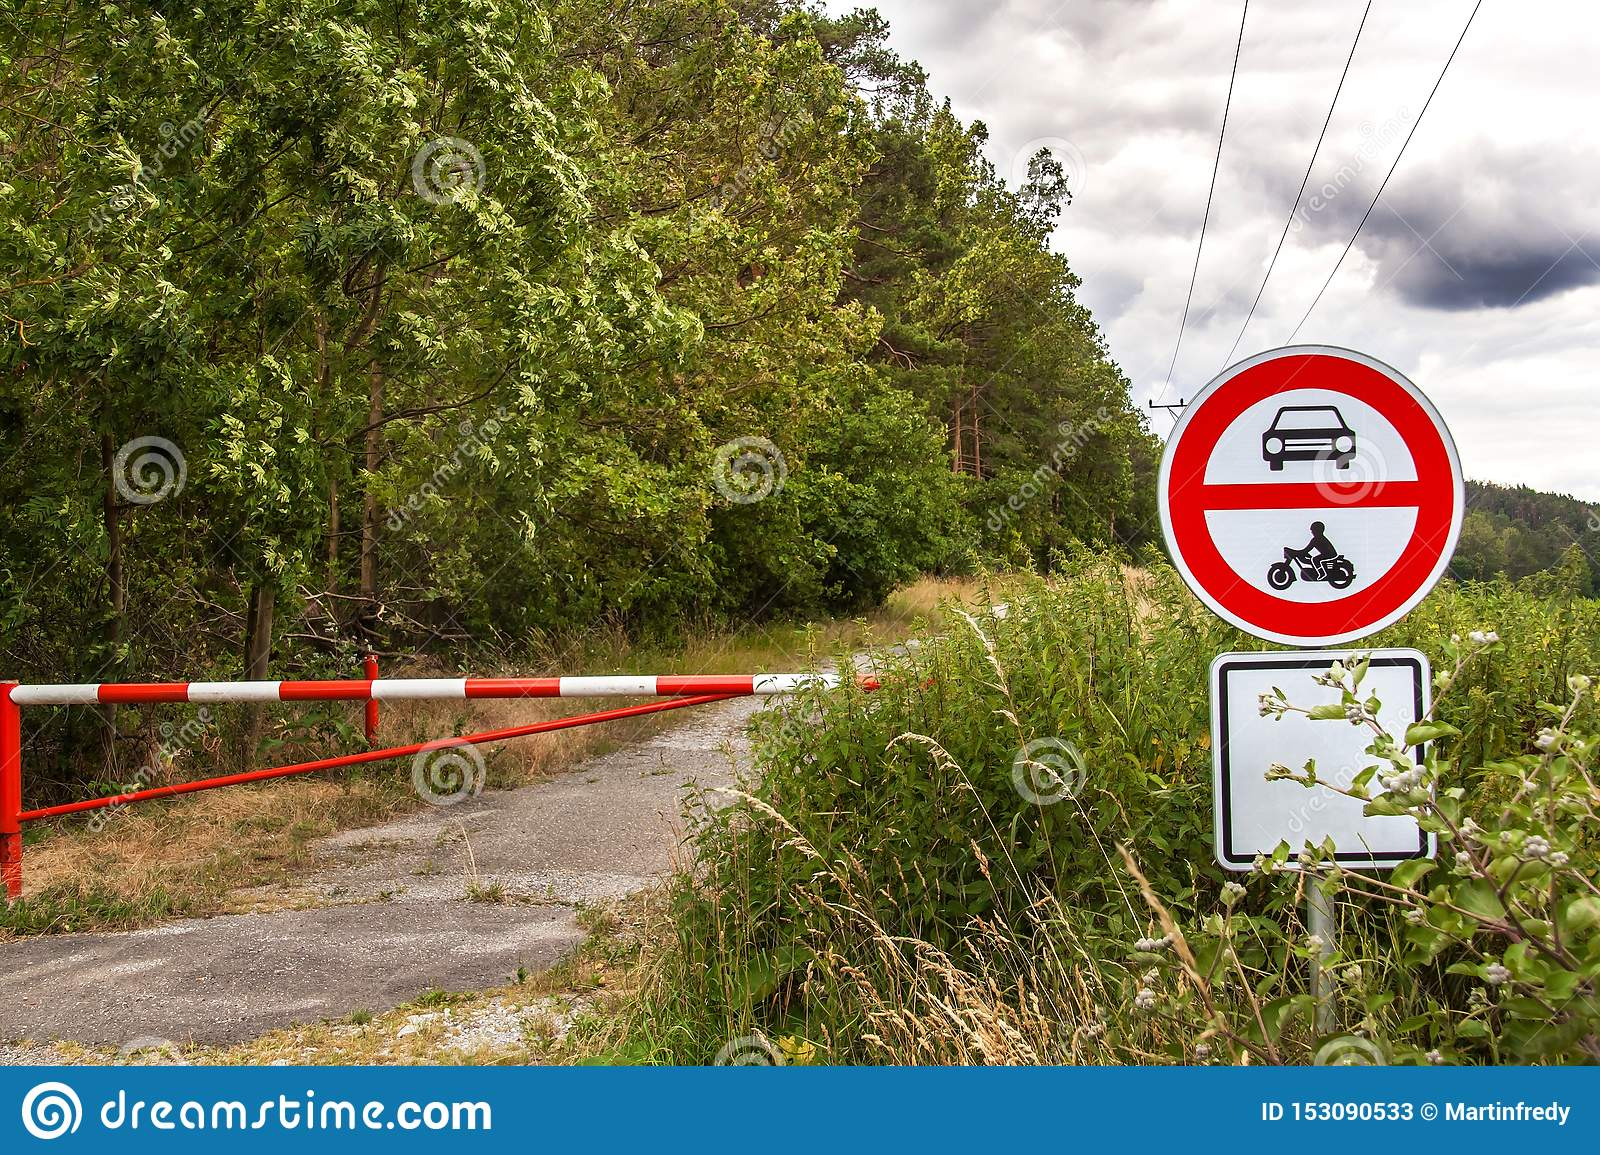 No entry for motor vehicles, cycling only allowed. Storm clouds over forest road. Closed entrance to the forest. Road sign